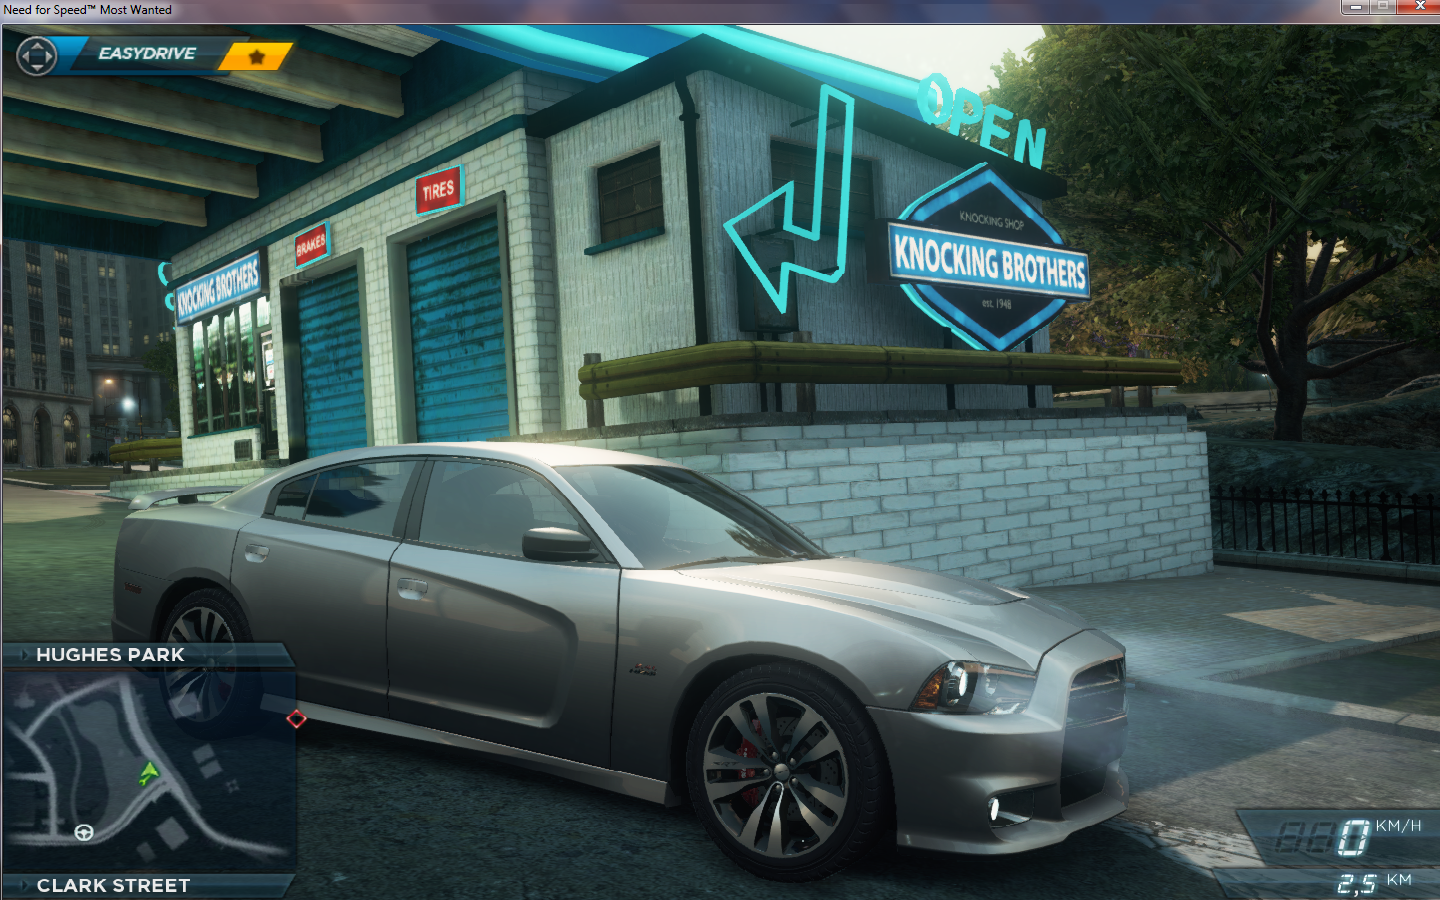 Need for speed most wanted limited editionот rg